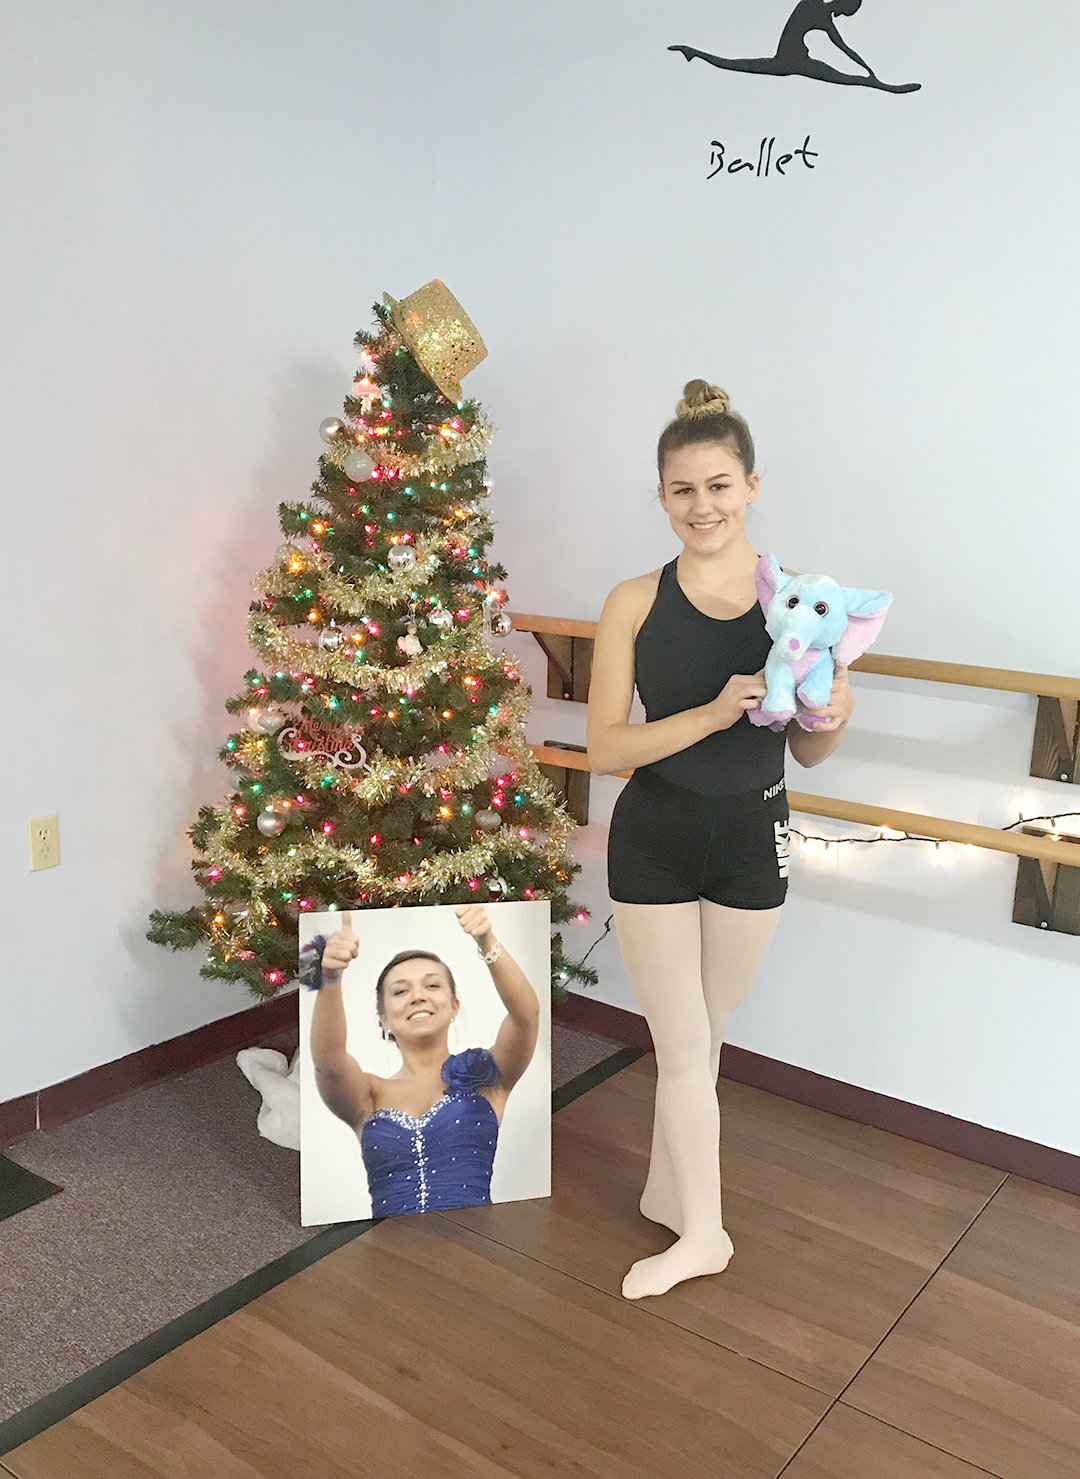 AWARD WINNING — The Most Improved Competitor Scholarship was awarded to Alexa Beaupre in the memory of former student Jillian Velardi, who was killed in an automobile accident. Here, Beaupre poses with a photo of Velardi next to the holiday tree.